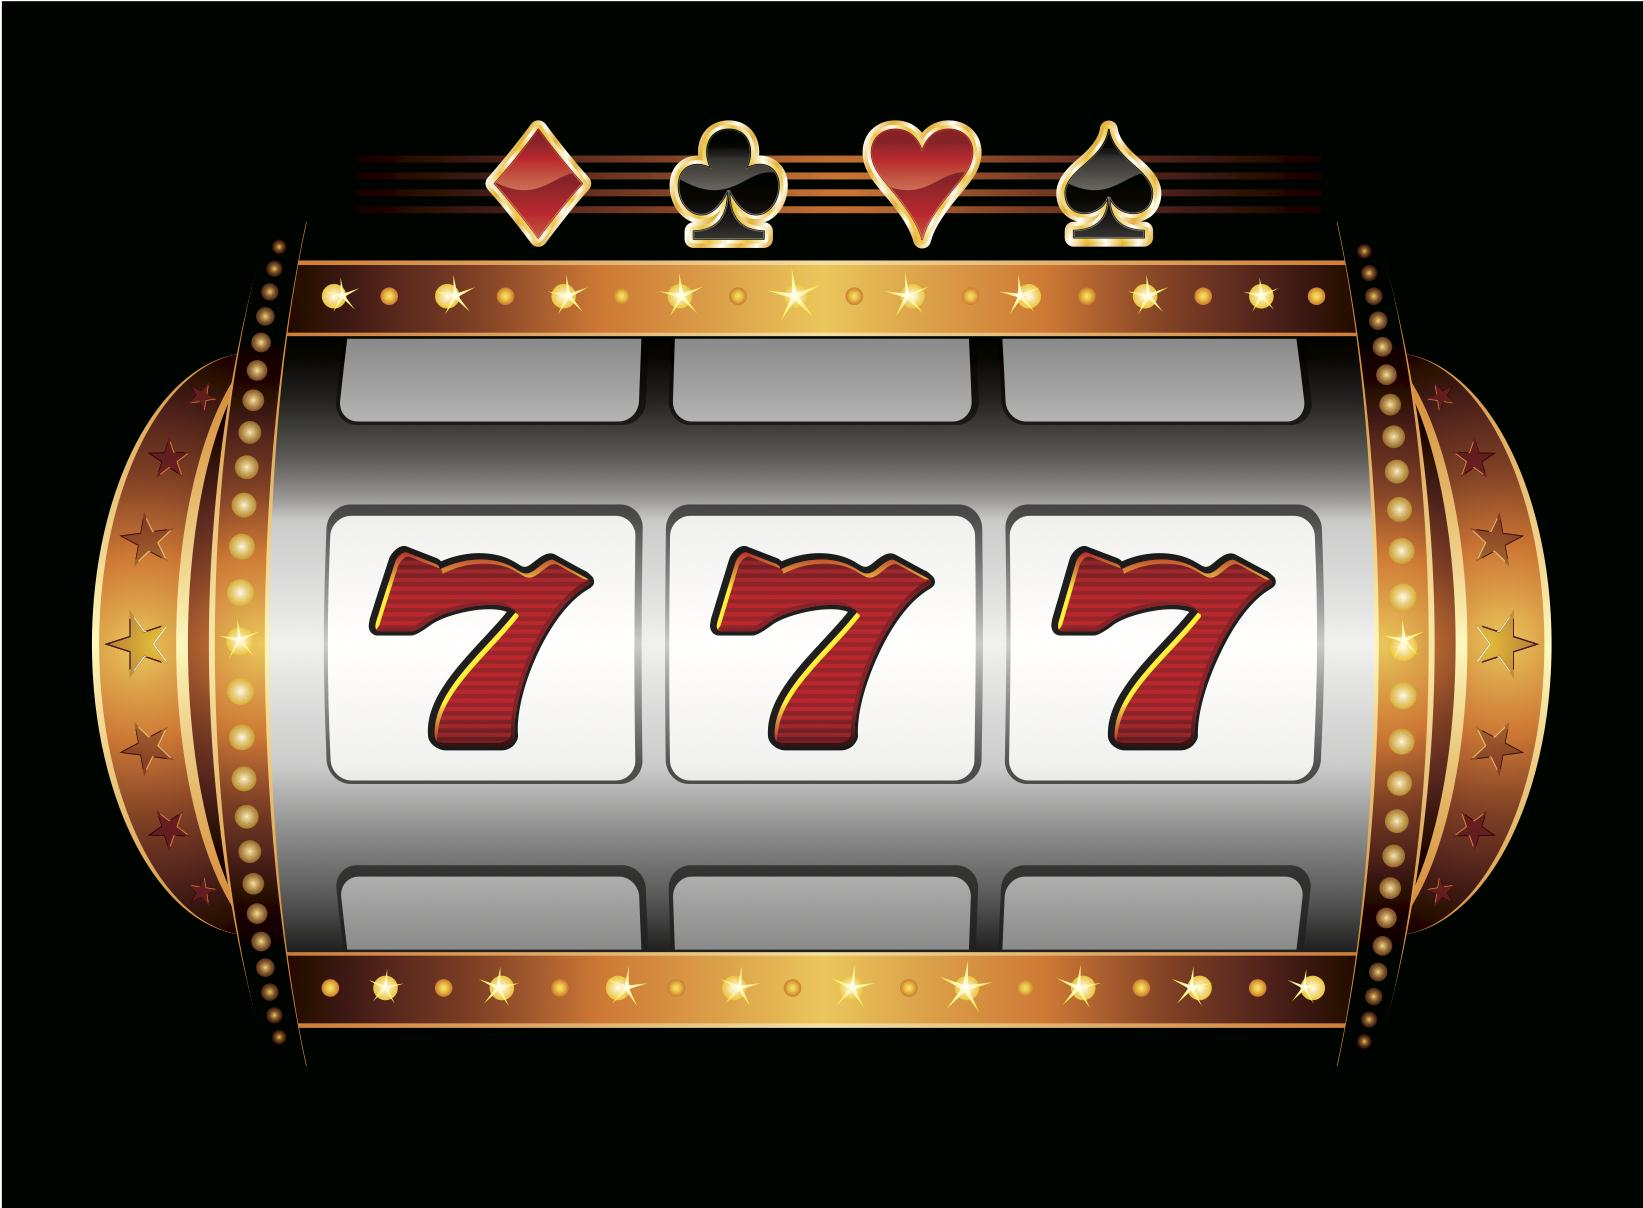 Gambling slot machine with three number 7's in the window